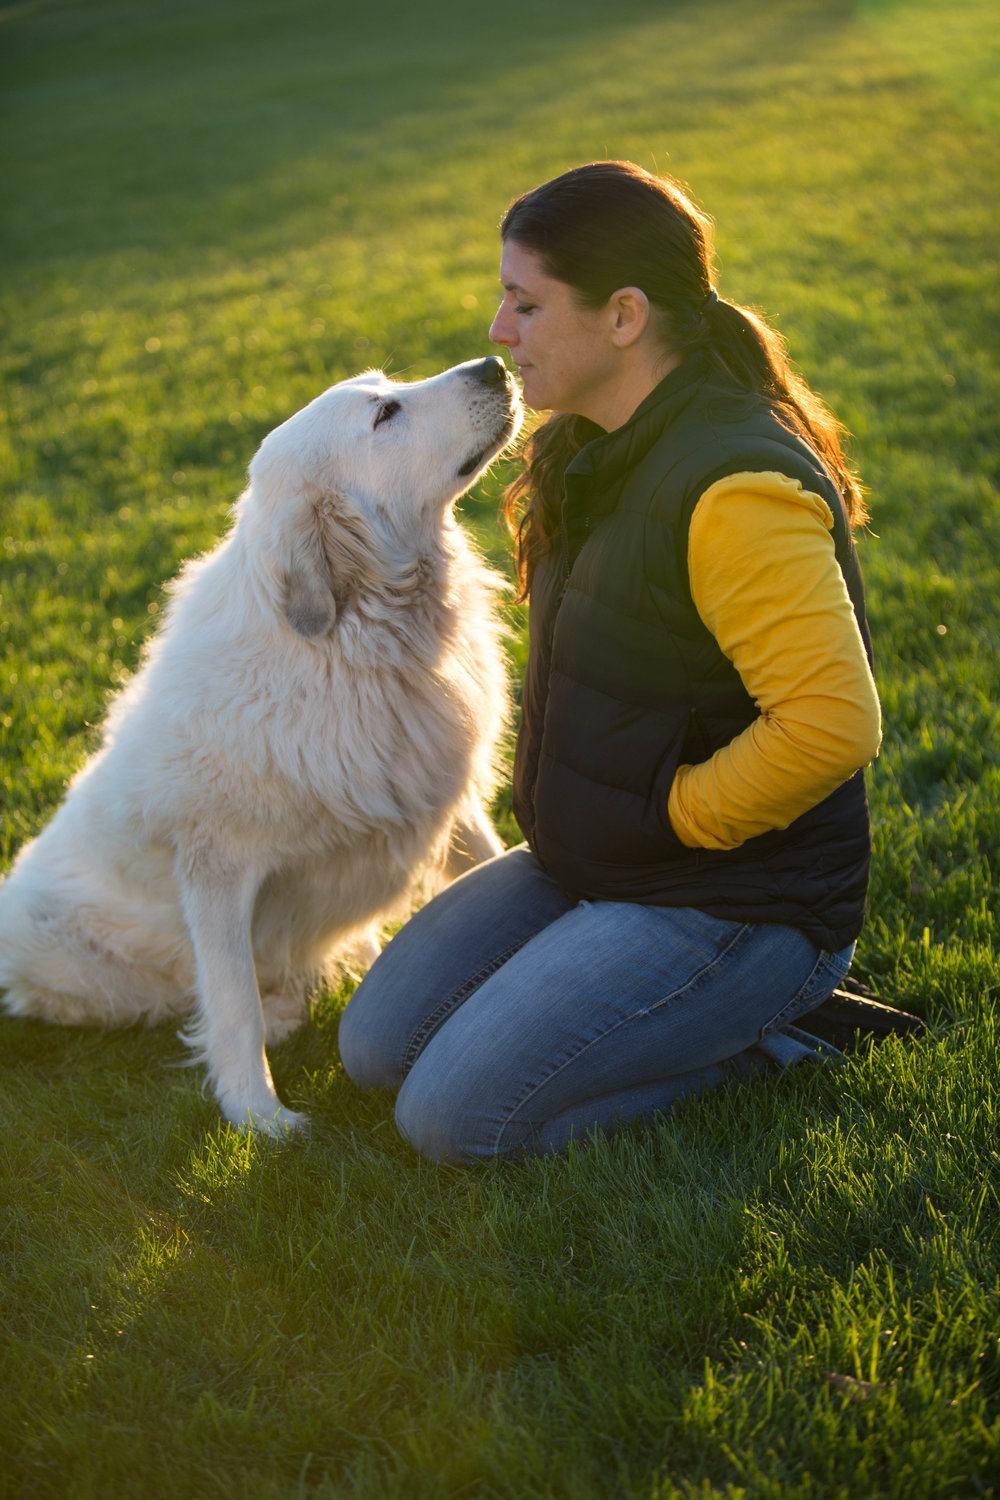 Deb & one of her four fur kids, Daphne (Great Pyrenees)